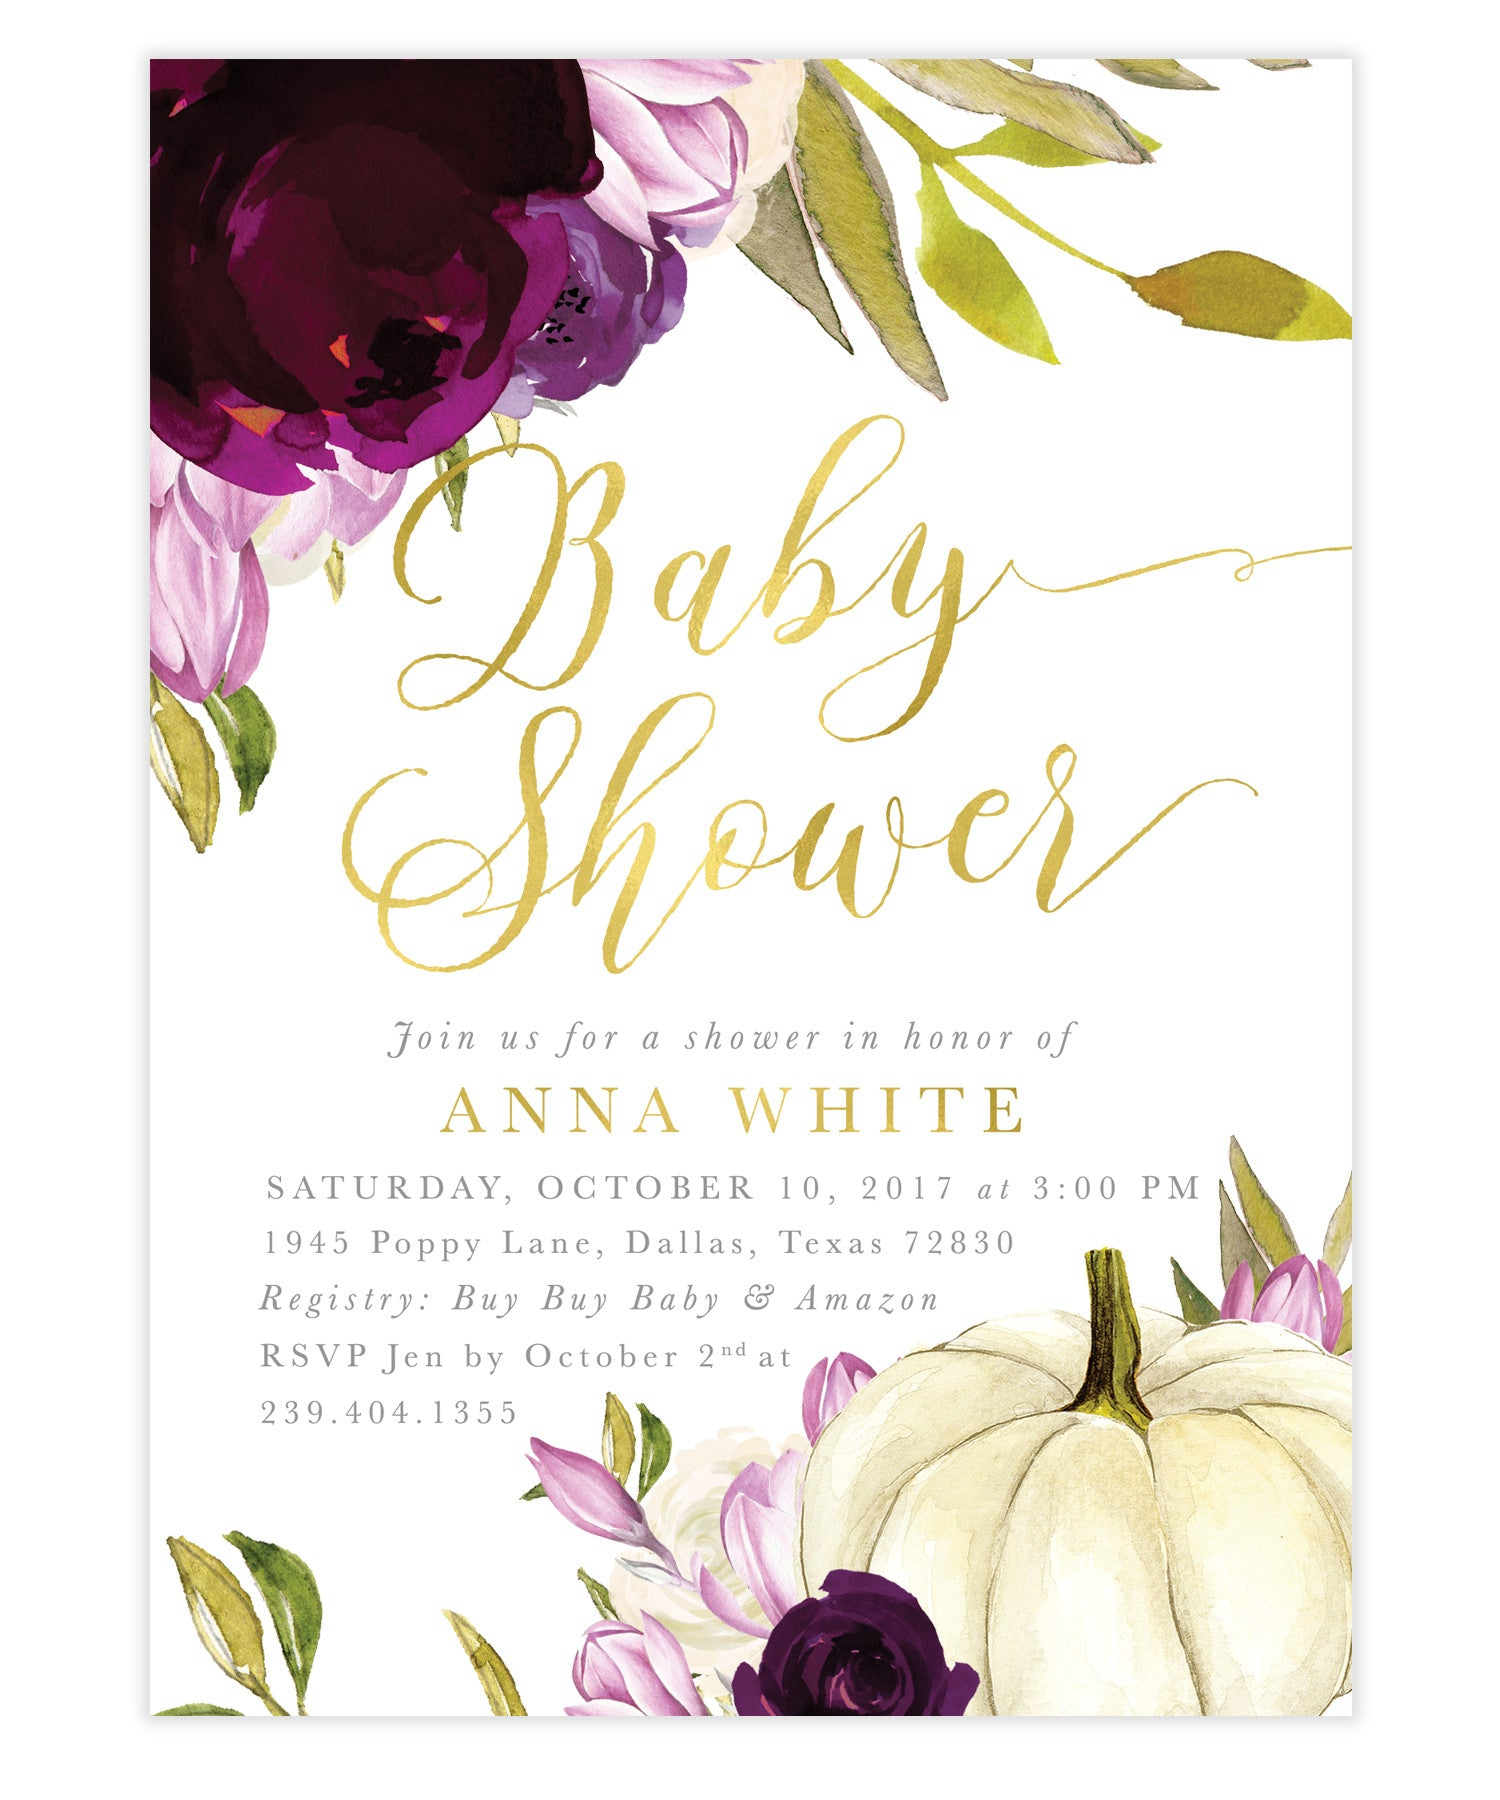 Fall baby shower invitation white rose florals white pumpkin sea fall purple amethyst roses pumpkin baby shower invitation filmwisefo